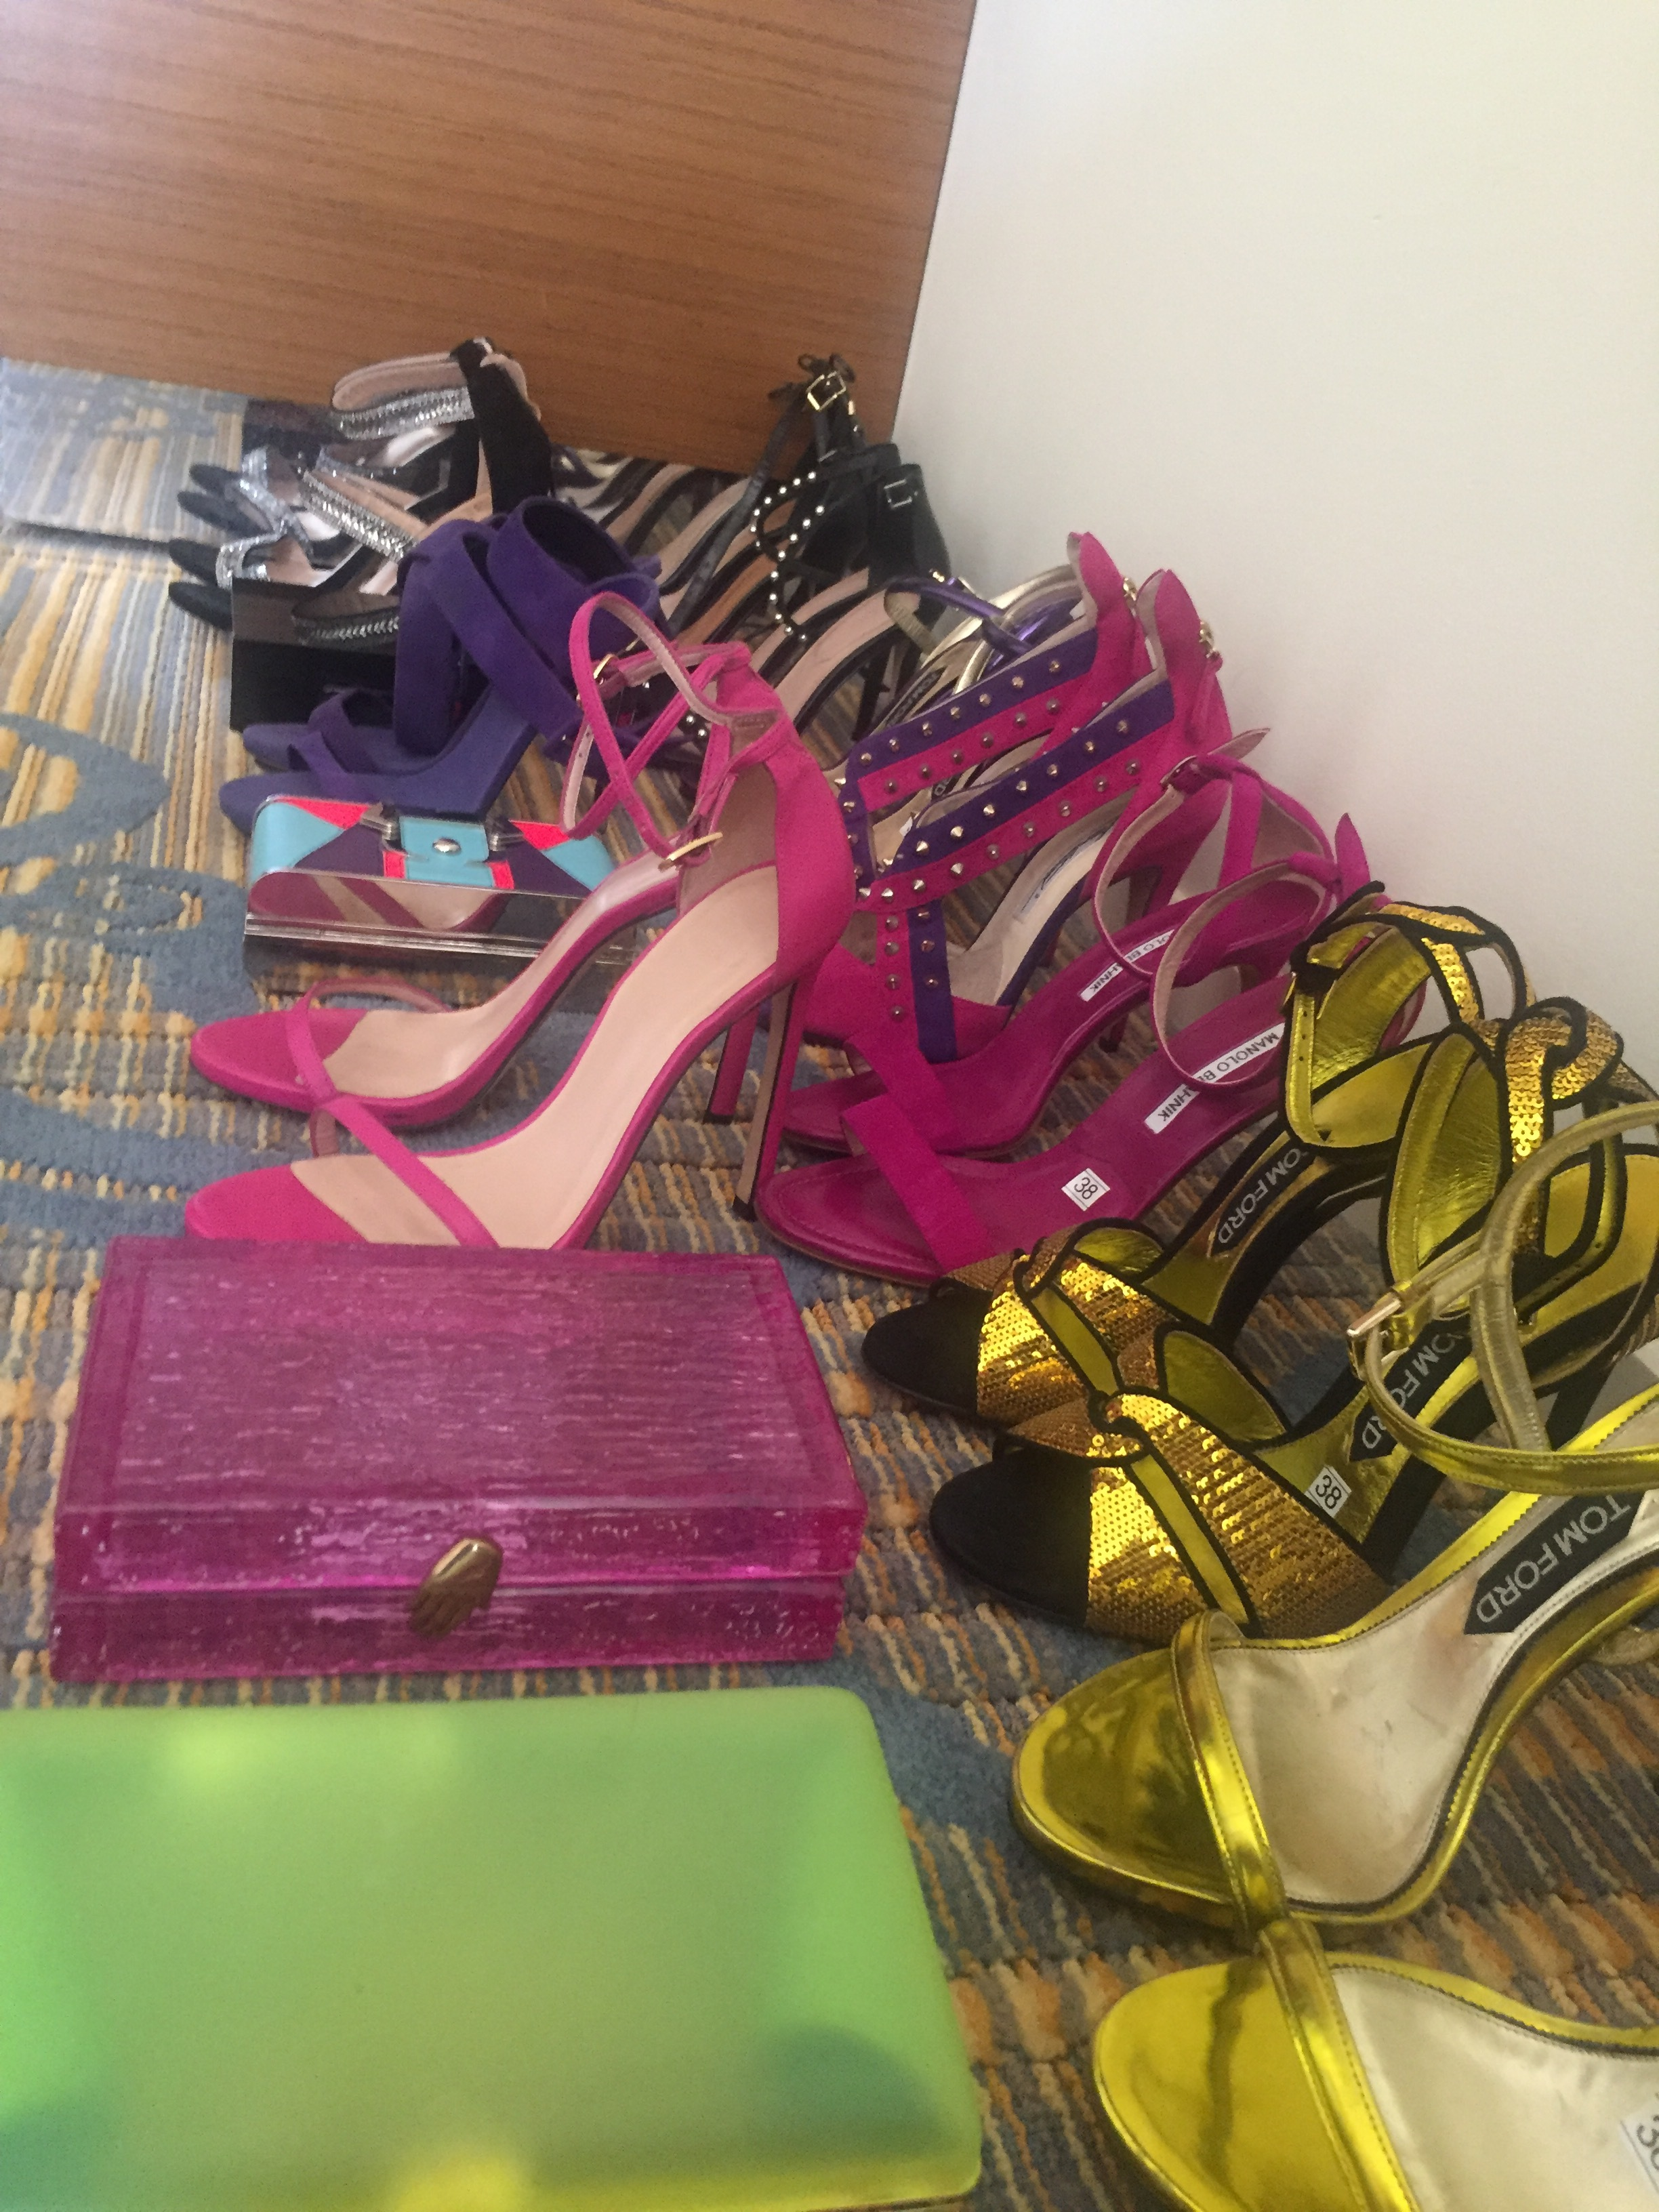 Grammy clutch and shoe options